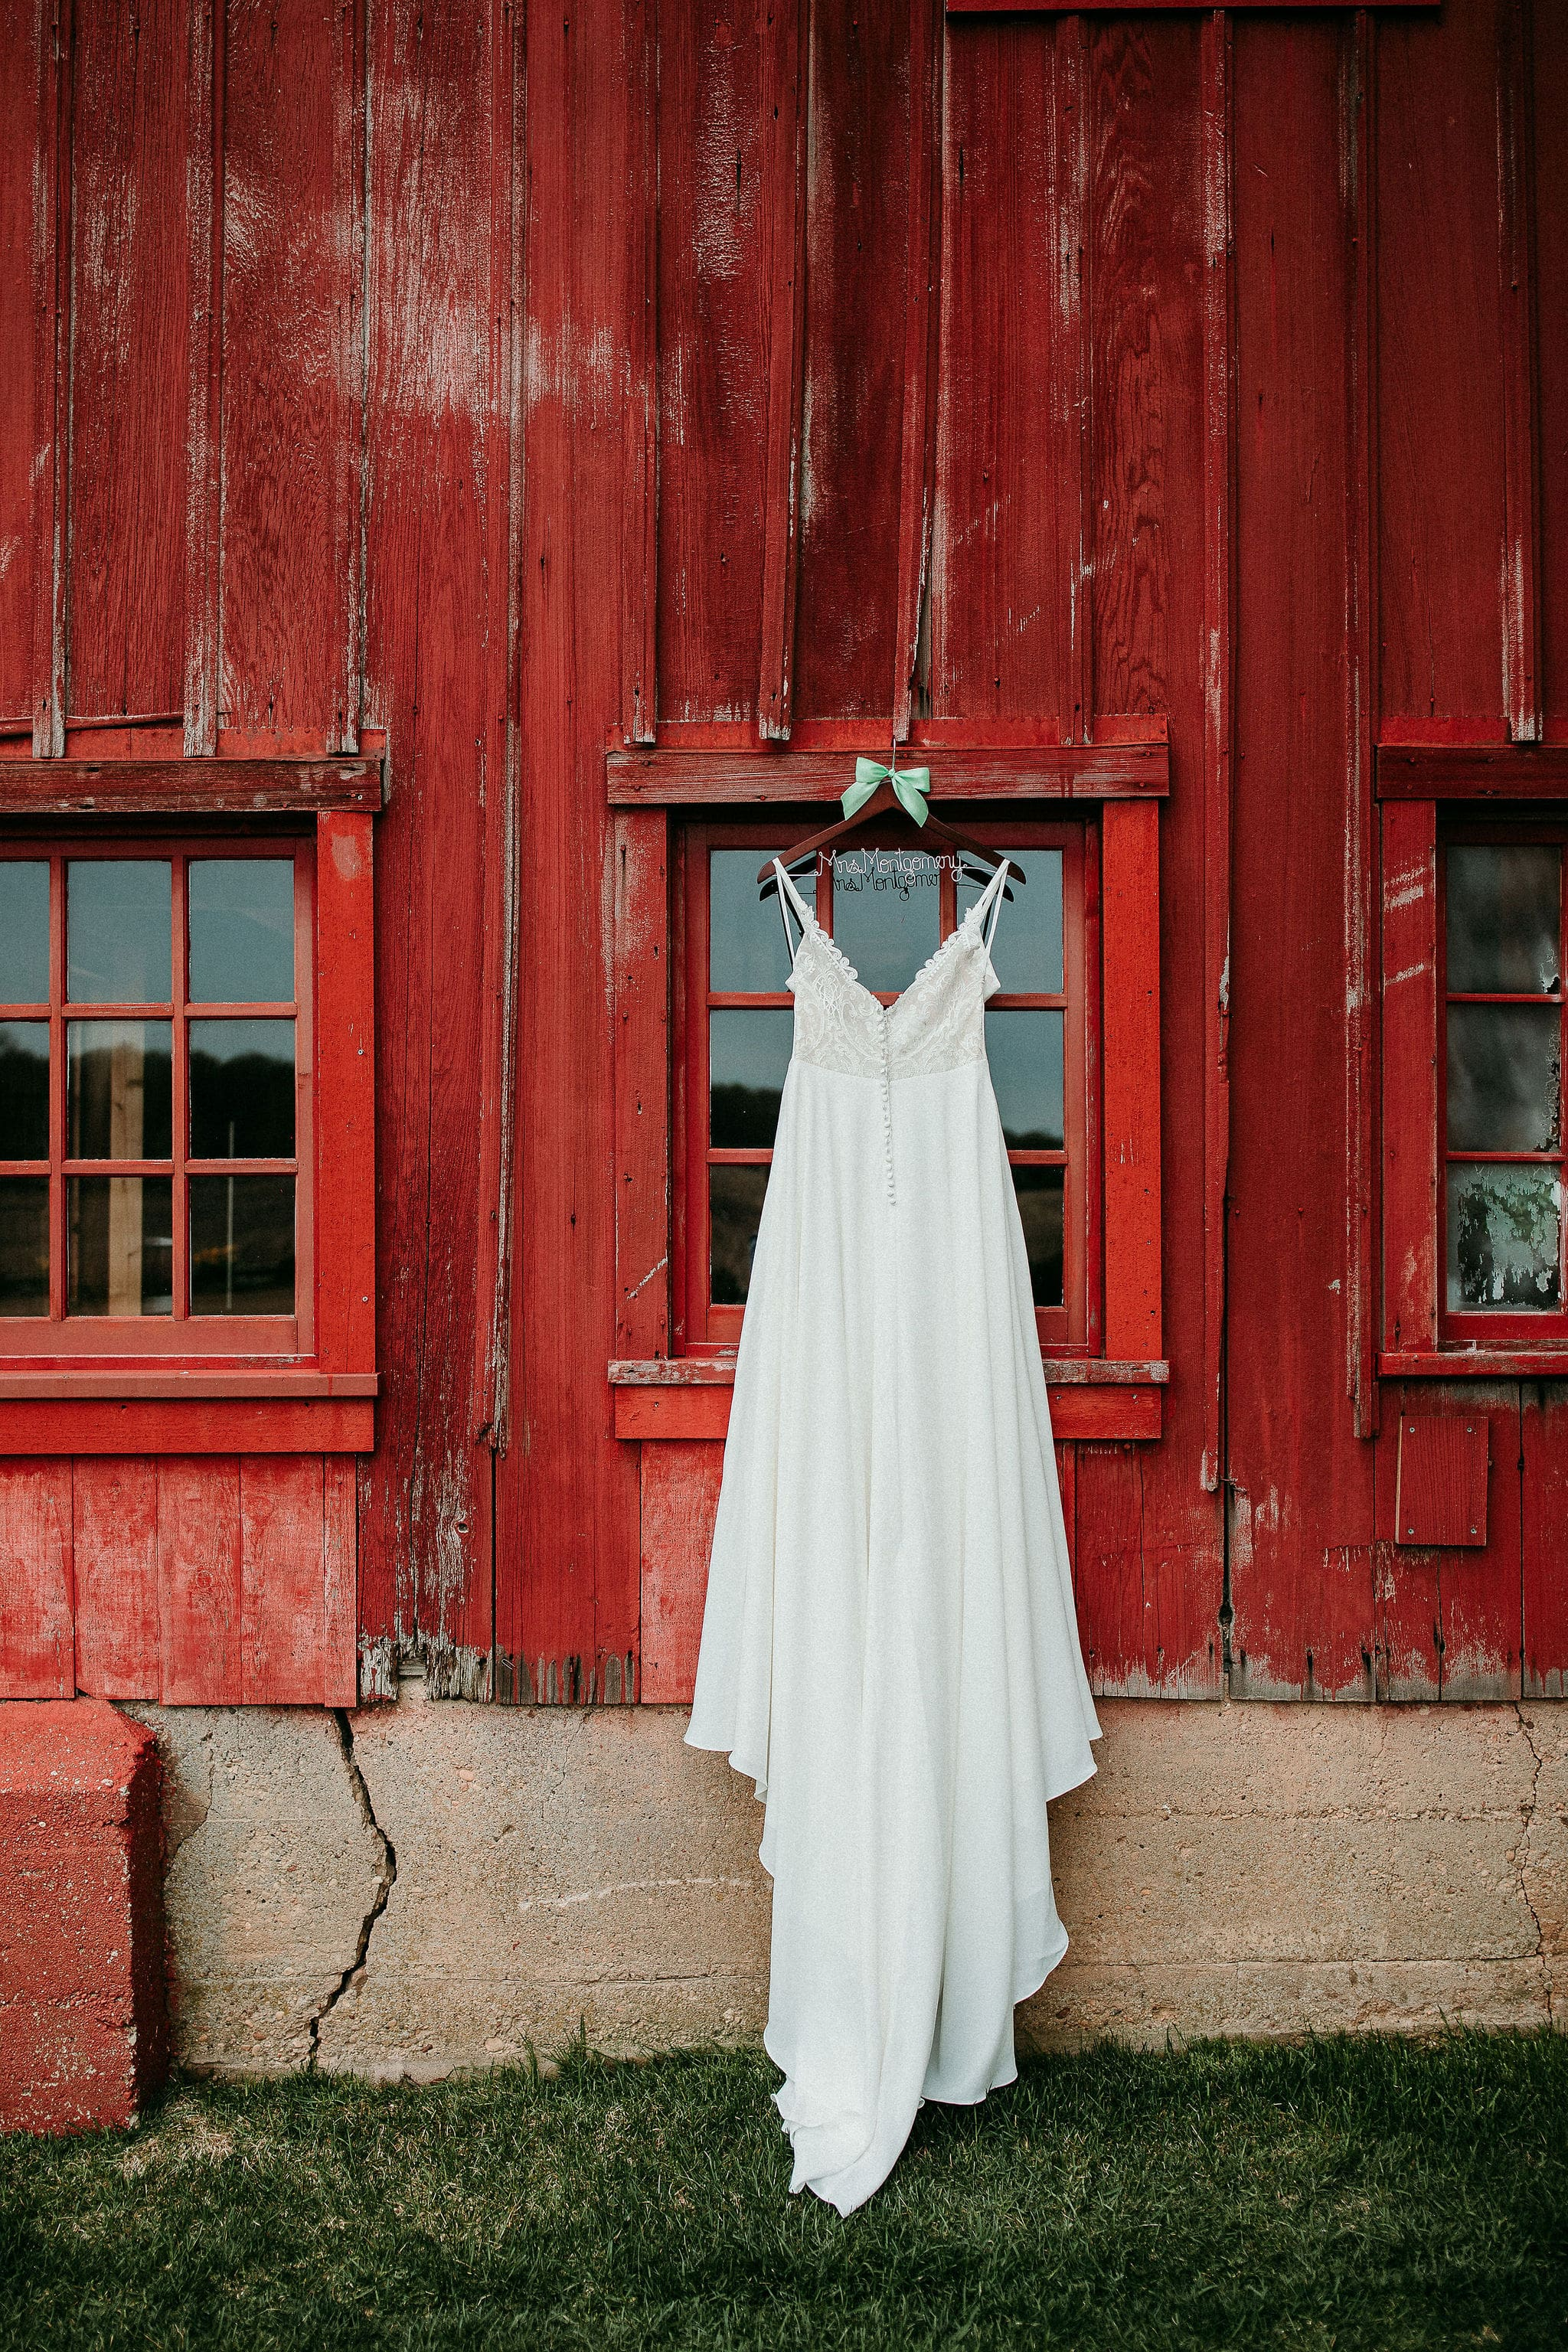 The Dress at The Barn